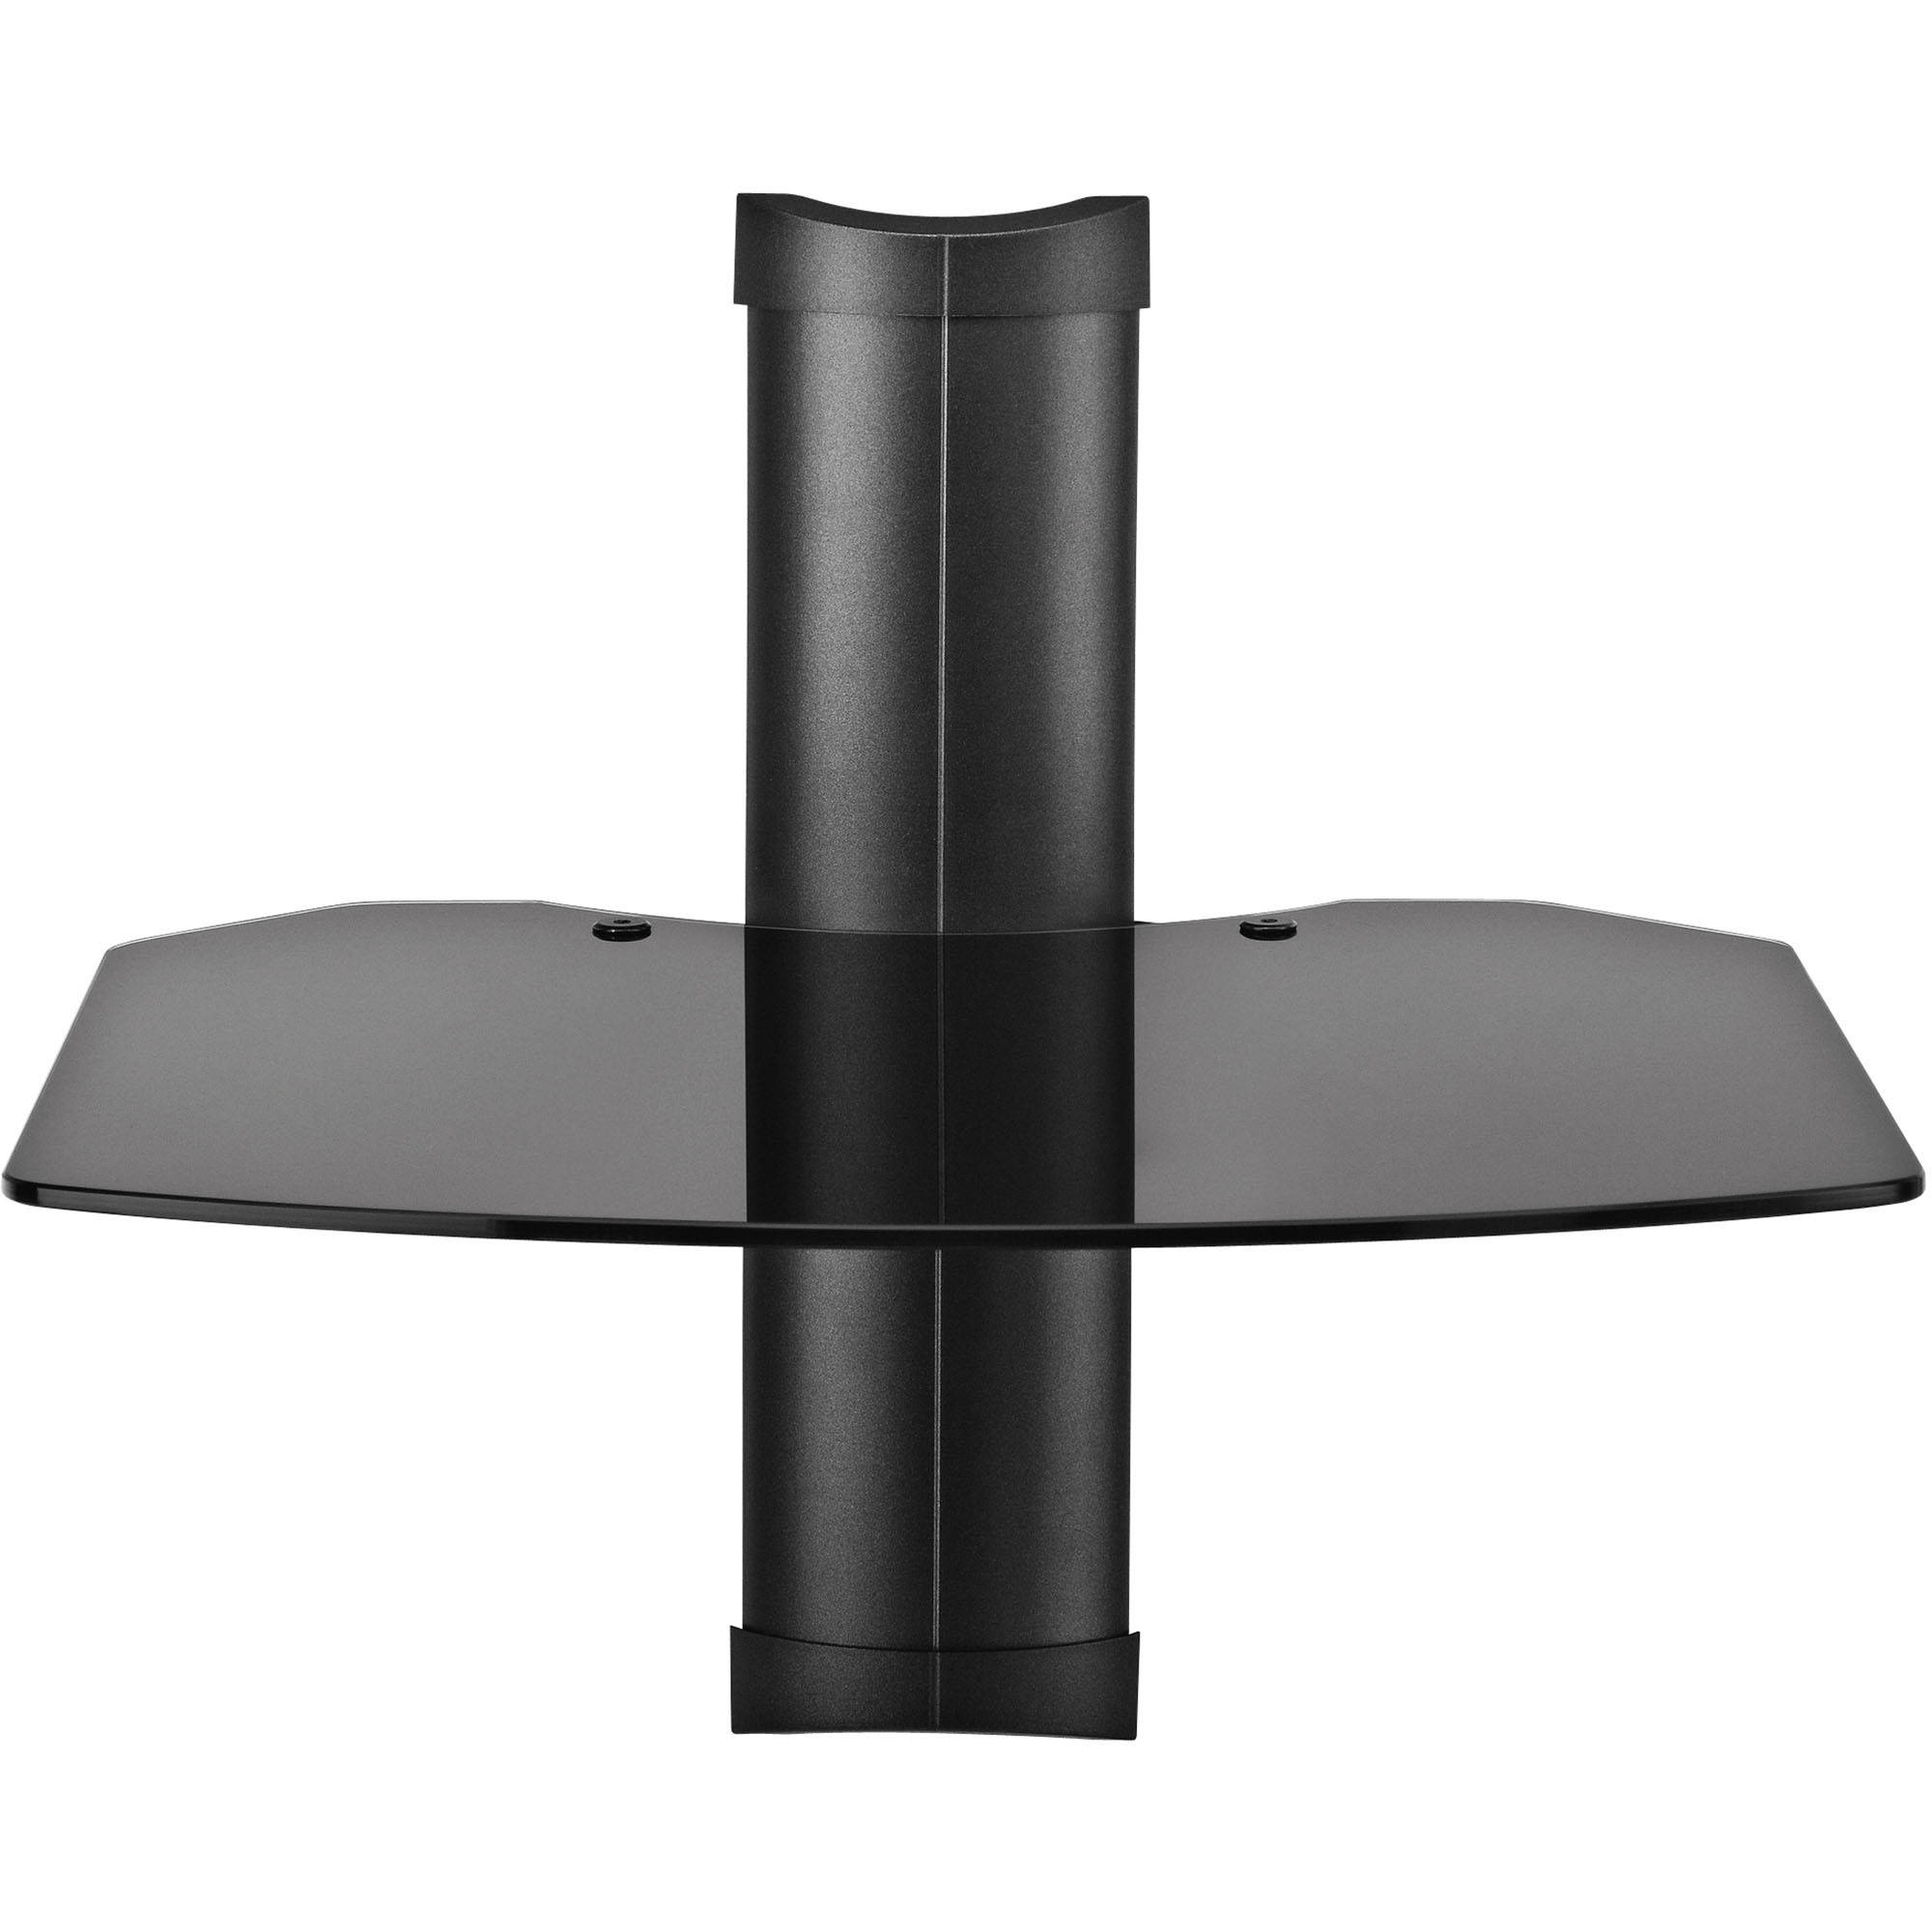 Omnimount Tria 1 Wall System Black Black Glass Tria 1 B Bh For Cable Glass Shelf System (Image 7 of 15)